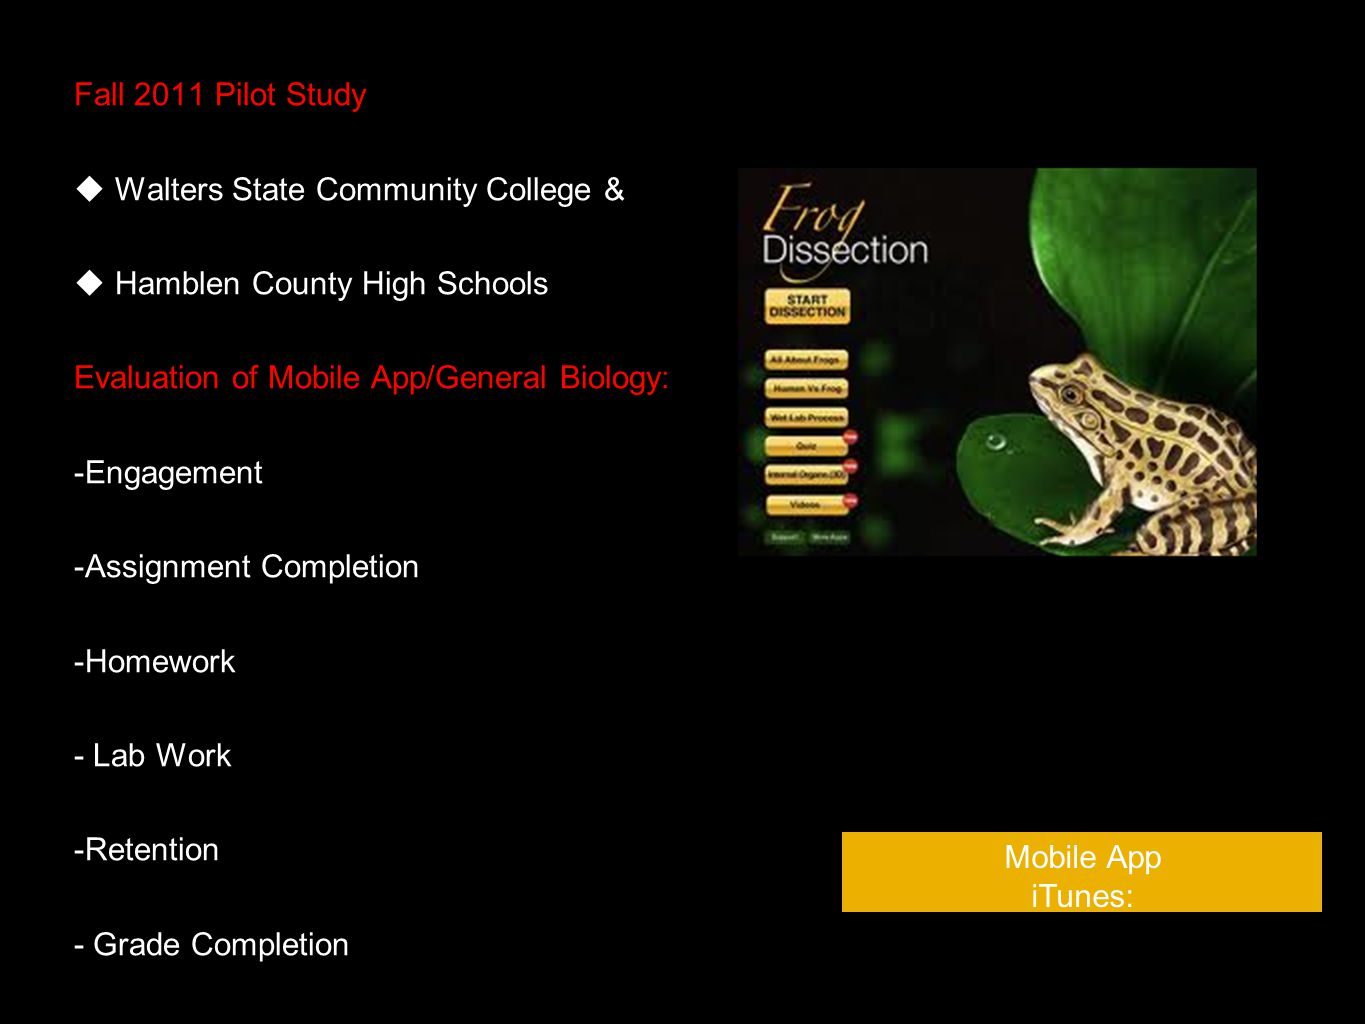 Fall 2011 Pilot Study Walters State Community College & Hamblen County High Schools Evaluation of Mobile App/General Biology: -Engagement -Assignment Completion -Homework - Lab Work -Retention - Grade Completion Mobile App iTunes: